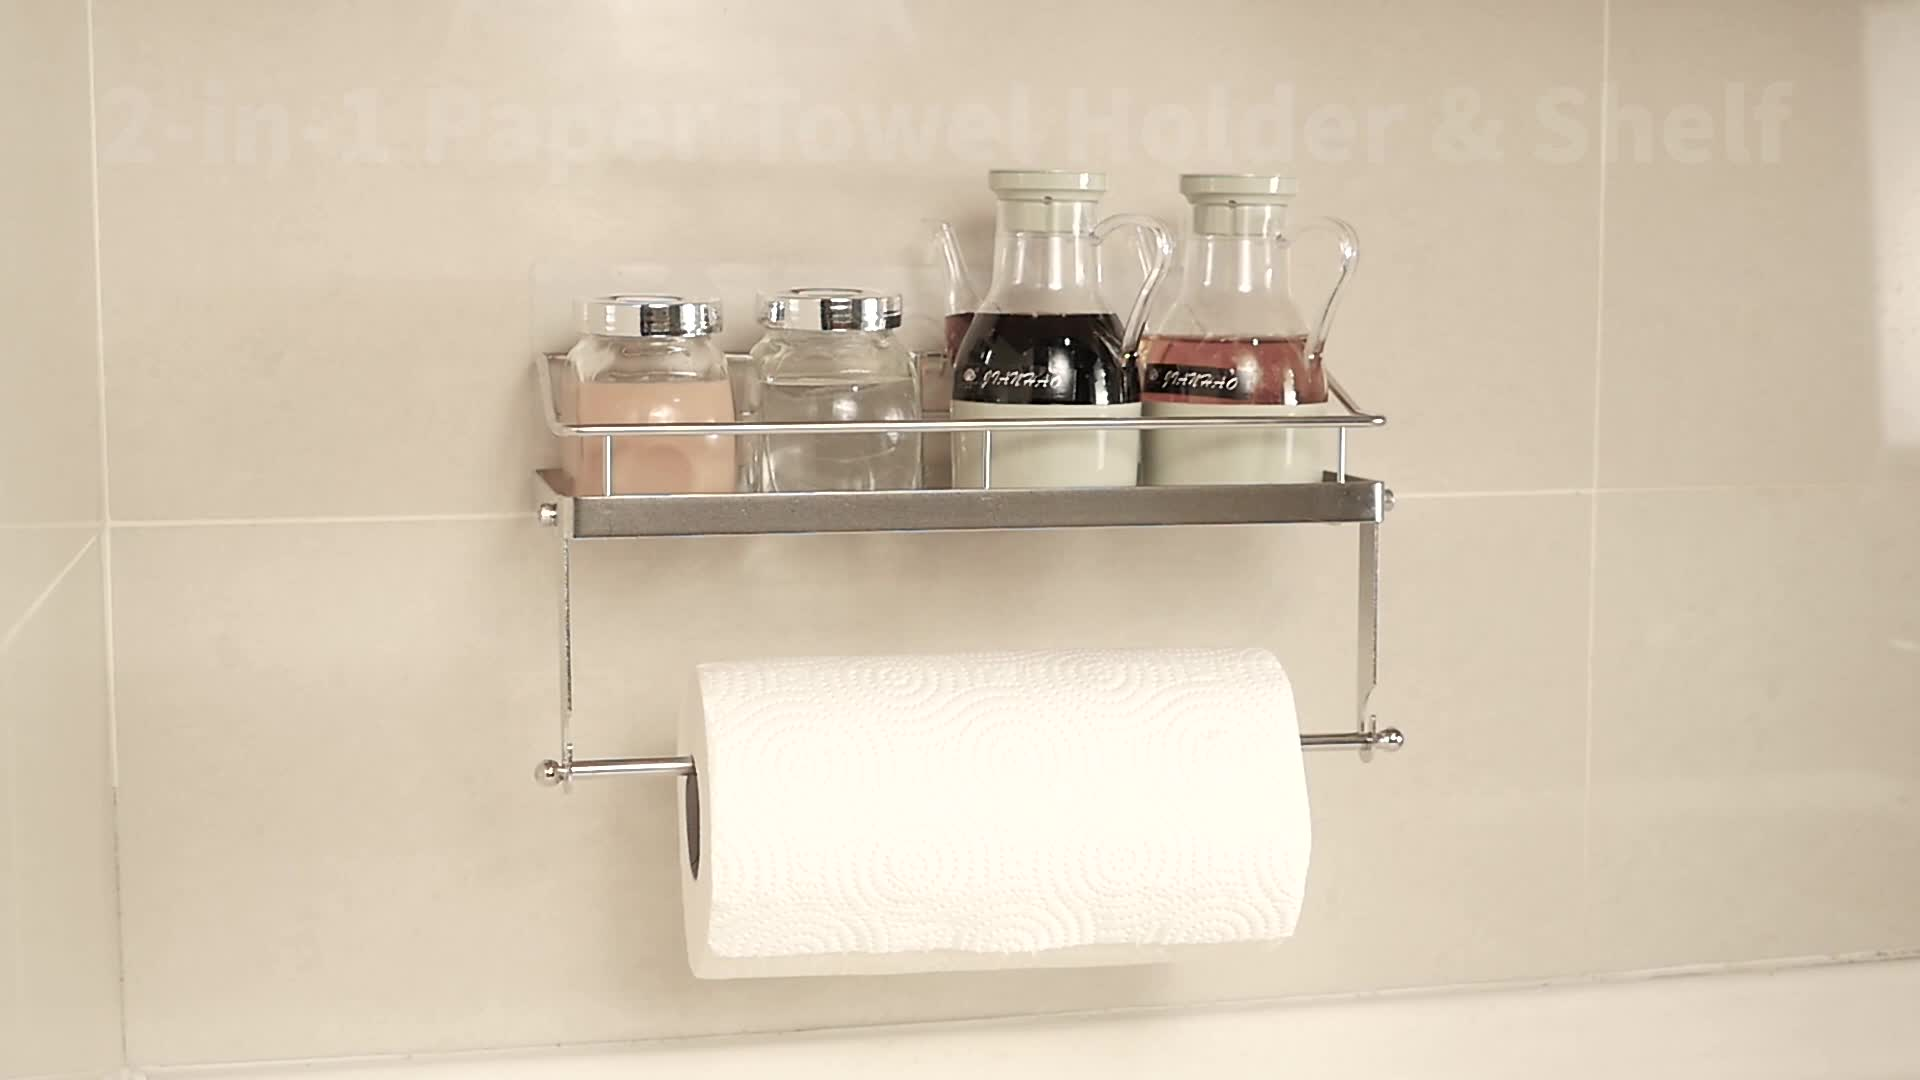 Adhesive Stainless Steel Paper Towel Holder With Shelf